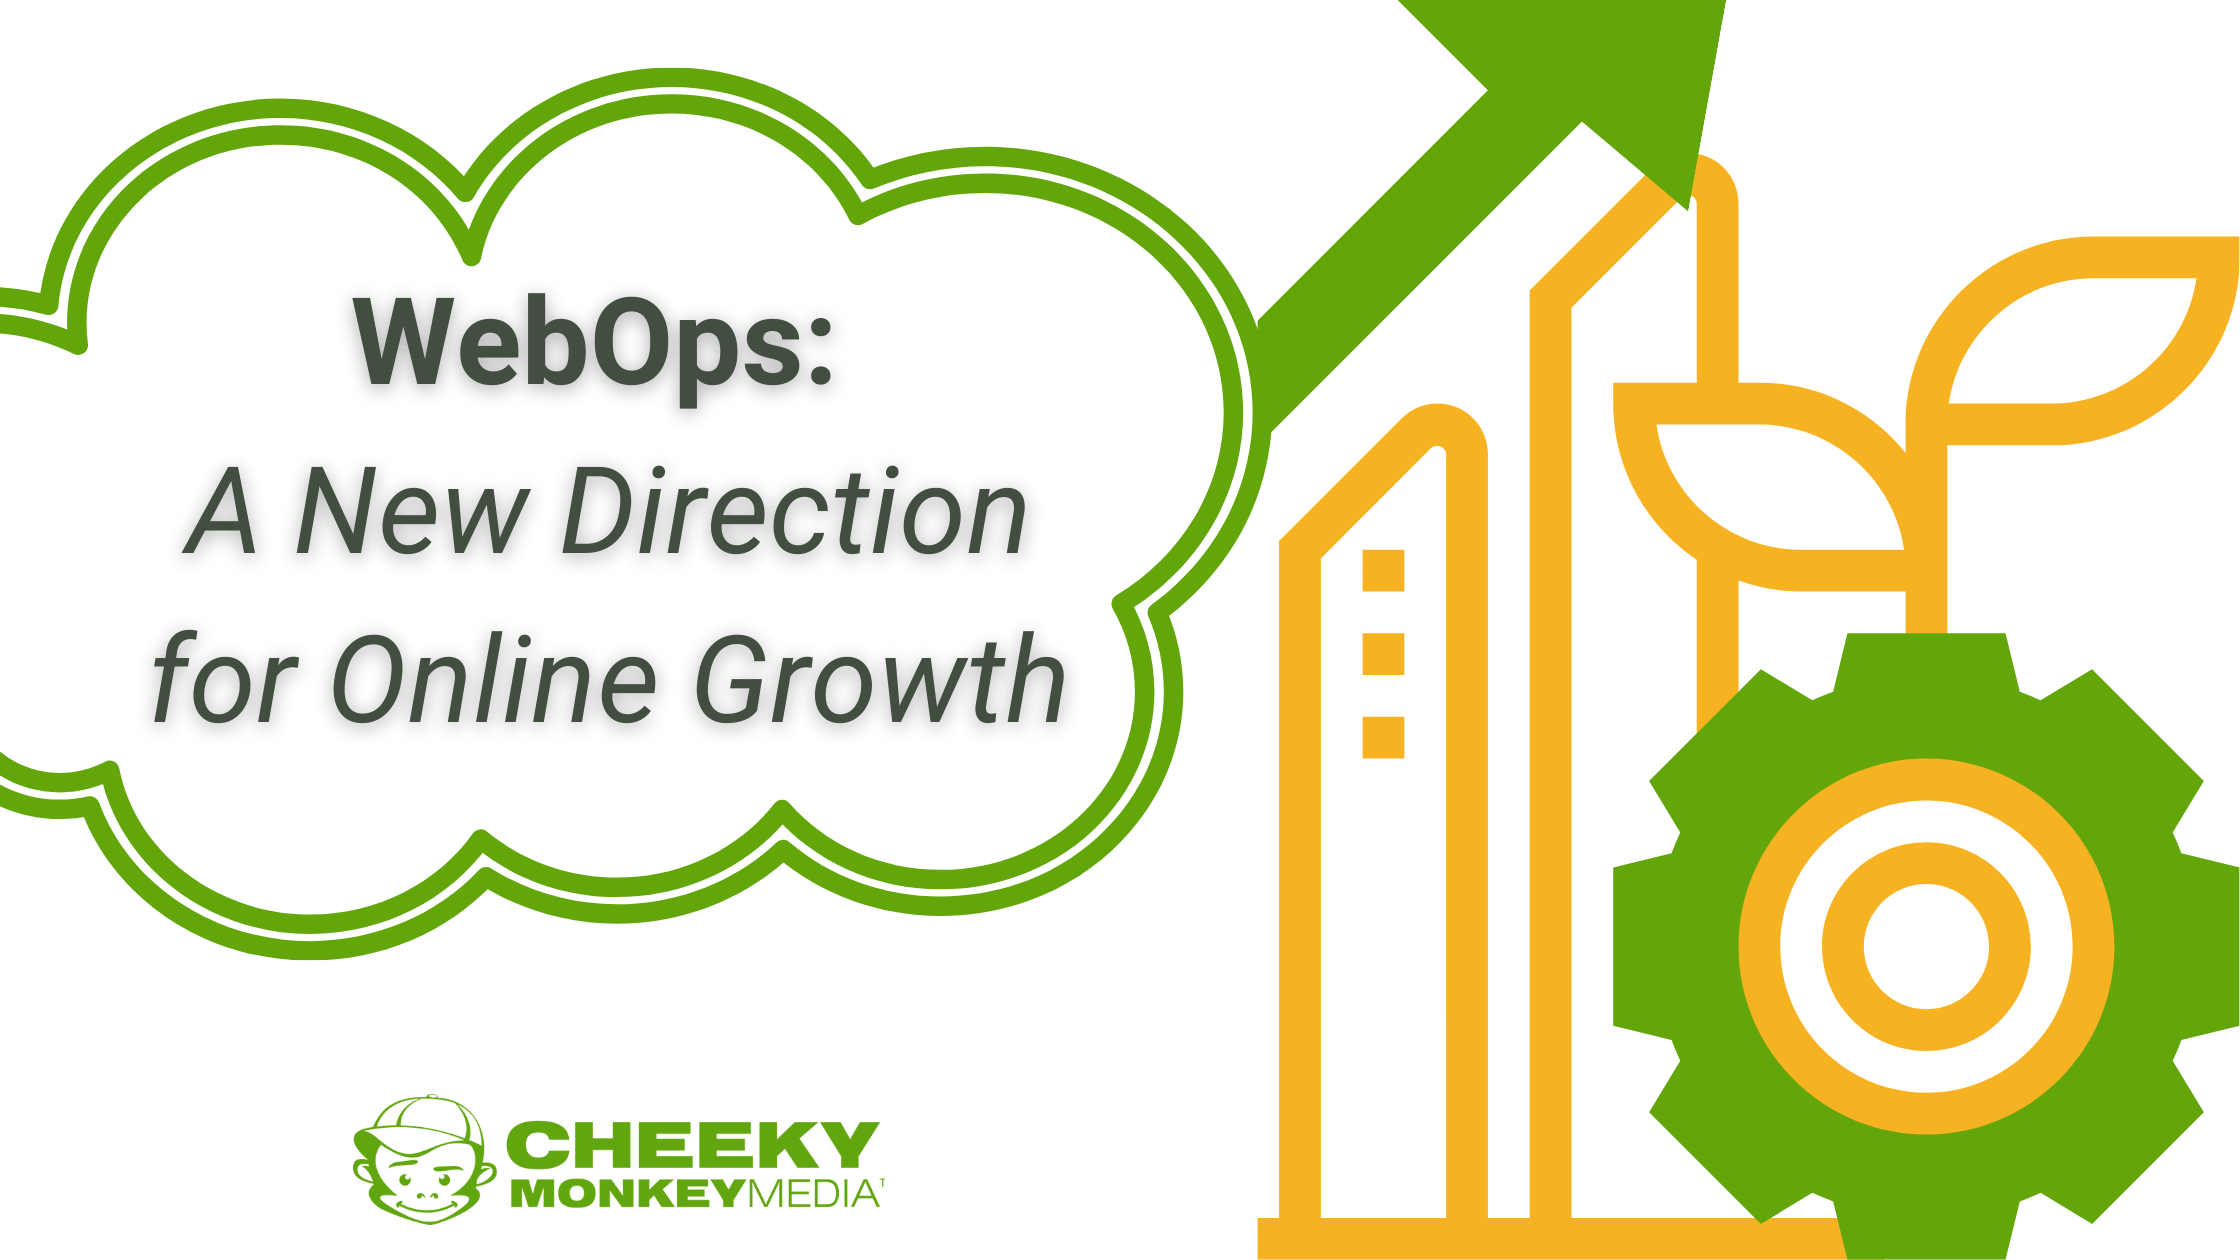 WebOps - a New Direction for Online Growth